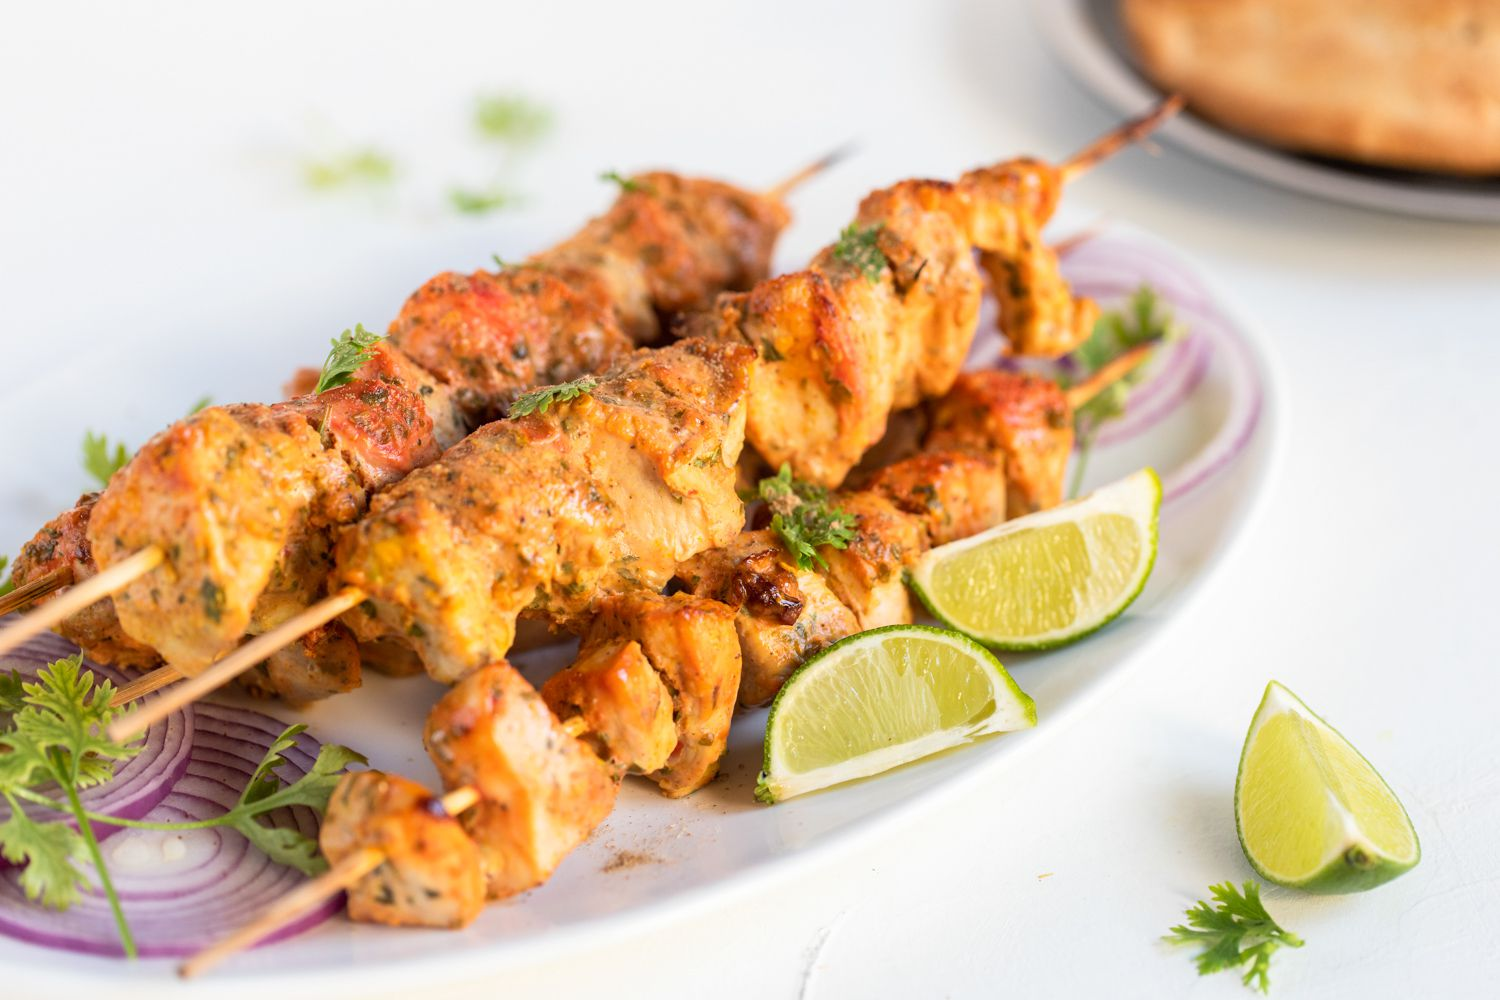 Remove from skewers and put the chicken on a plate.